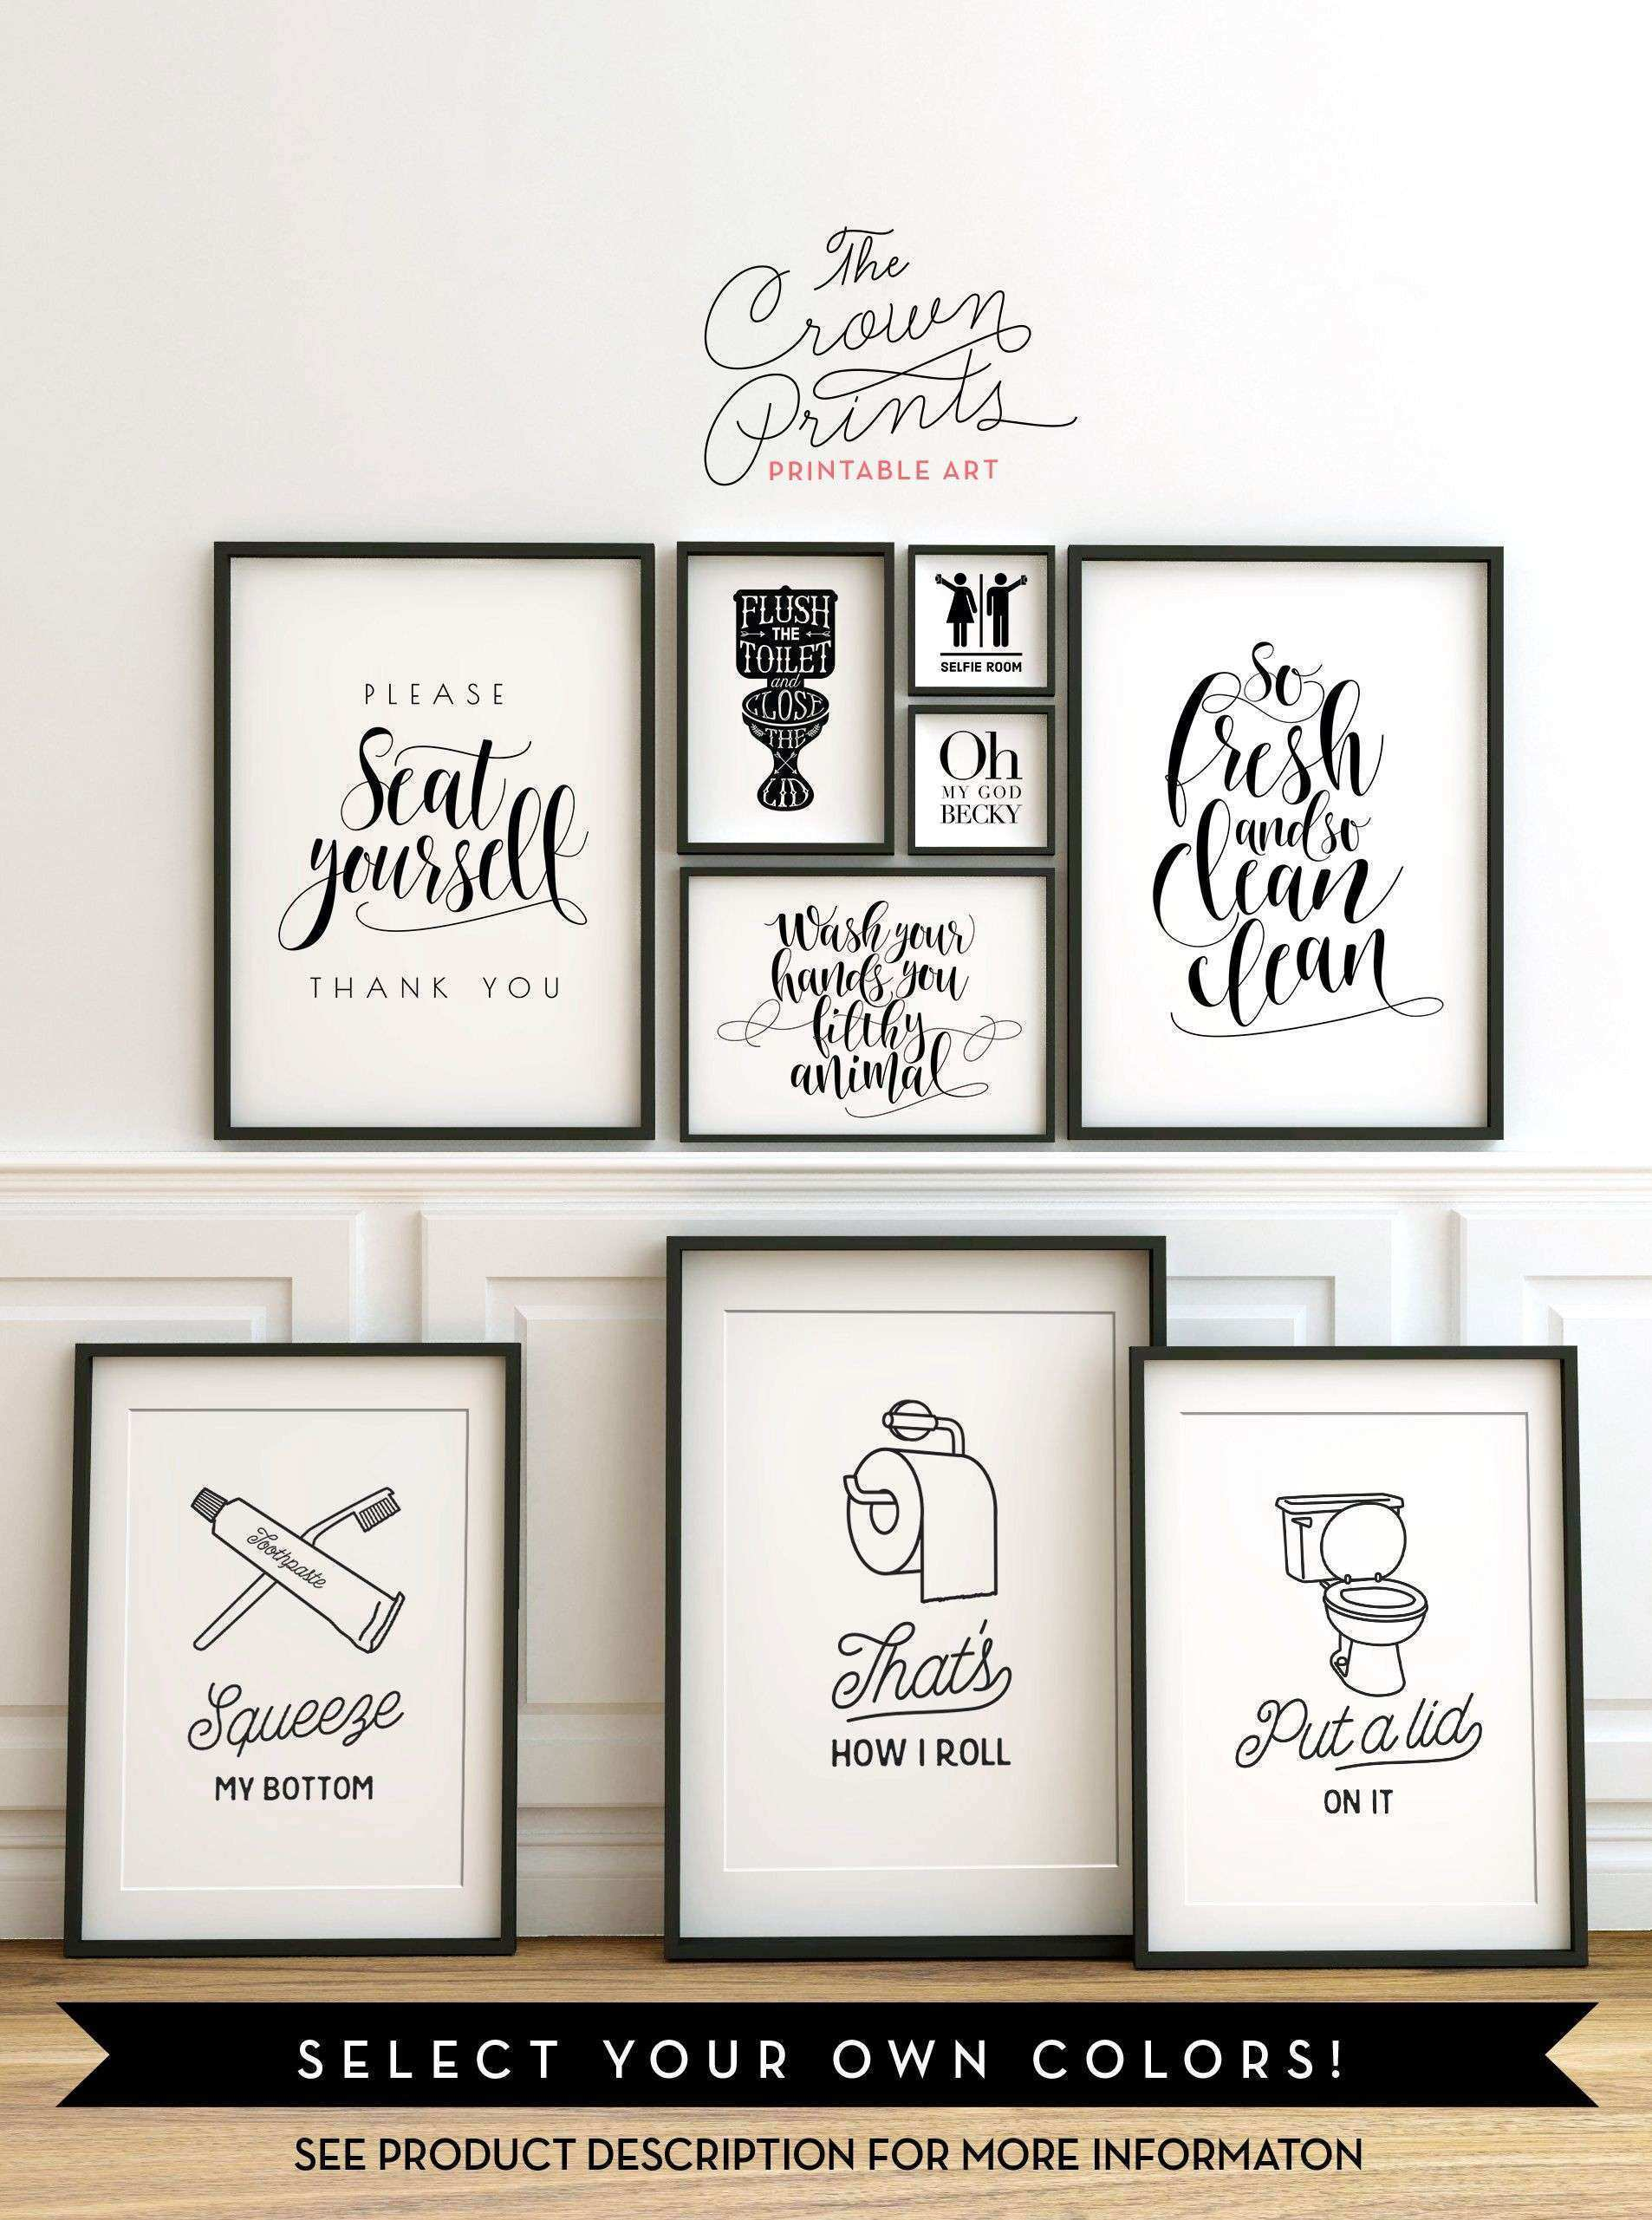 Pictures Suitable For Bathroom Walls Unique Printable Bathroom Wall Art  From The Crown Prints On Etsy